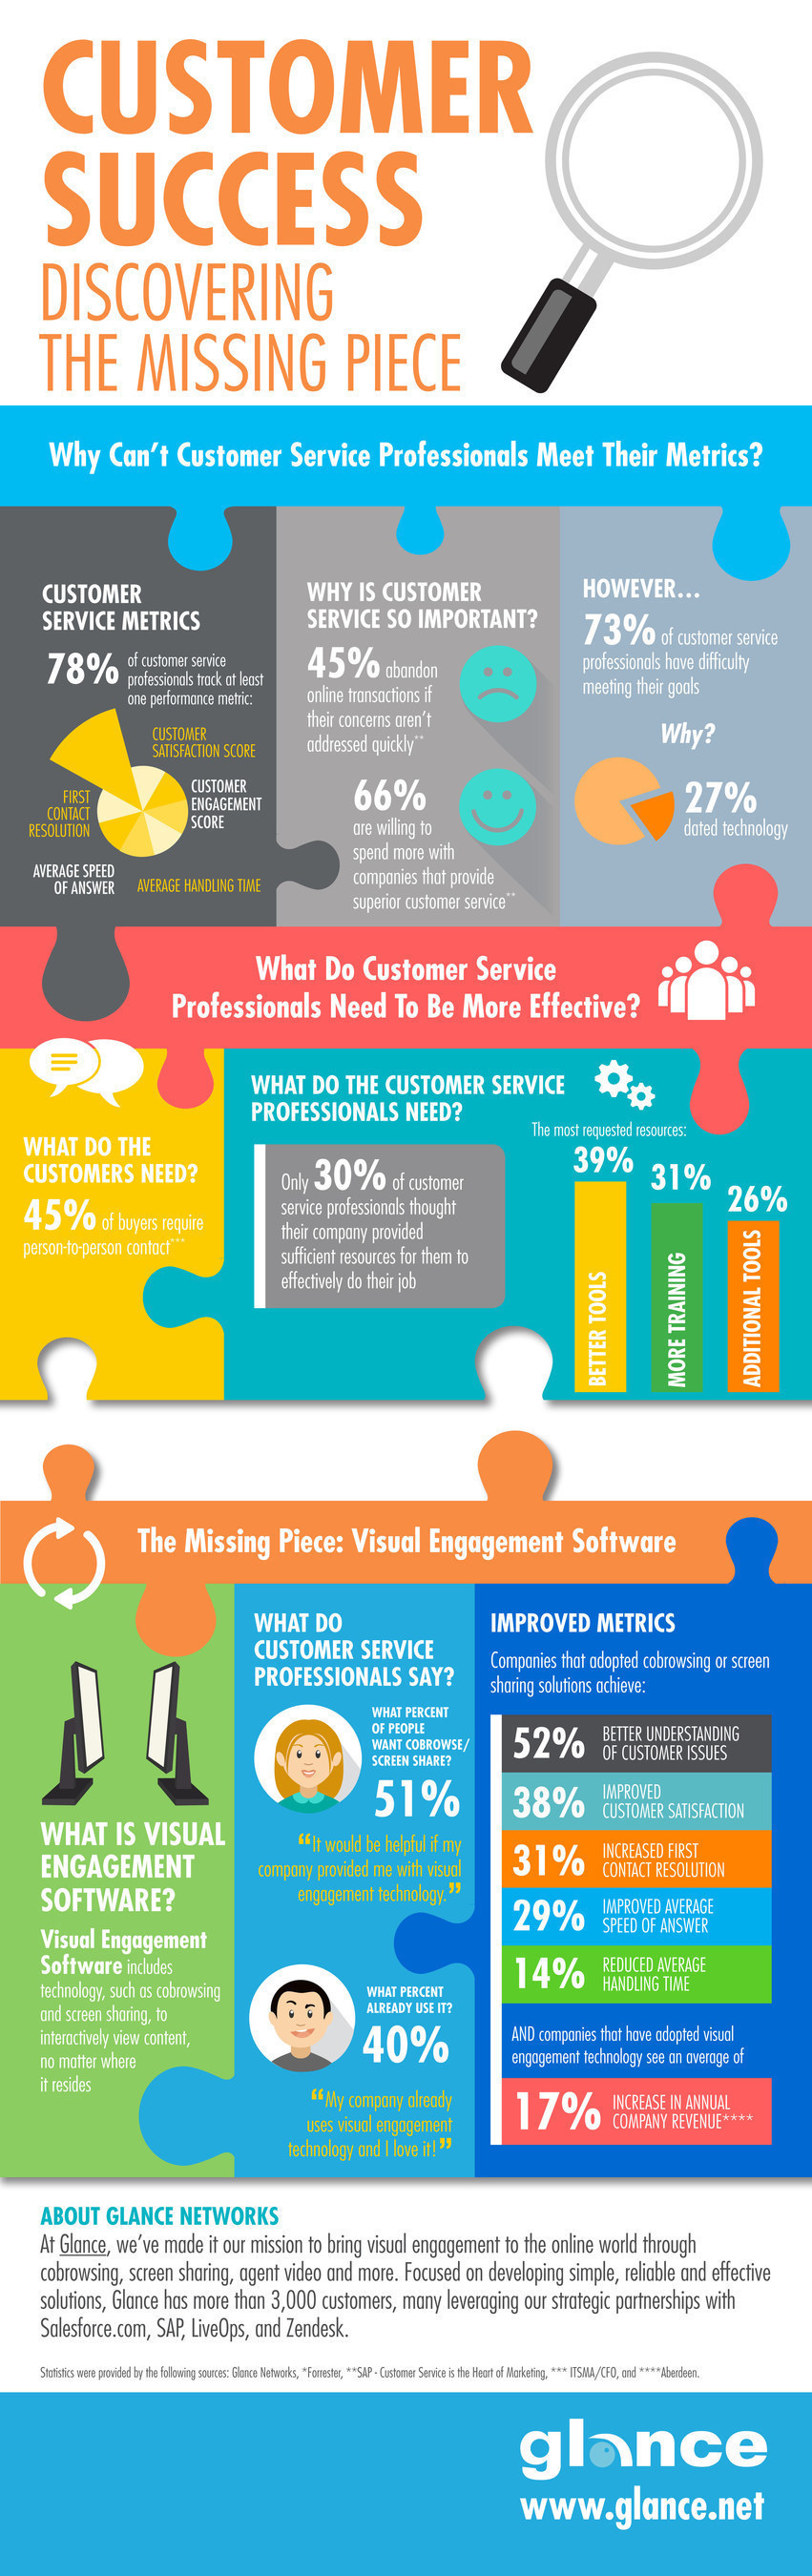 Study by Glance Networks finds visual engagement technology is the missing piece